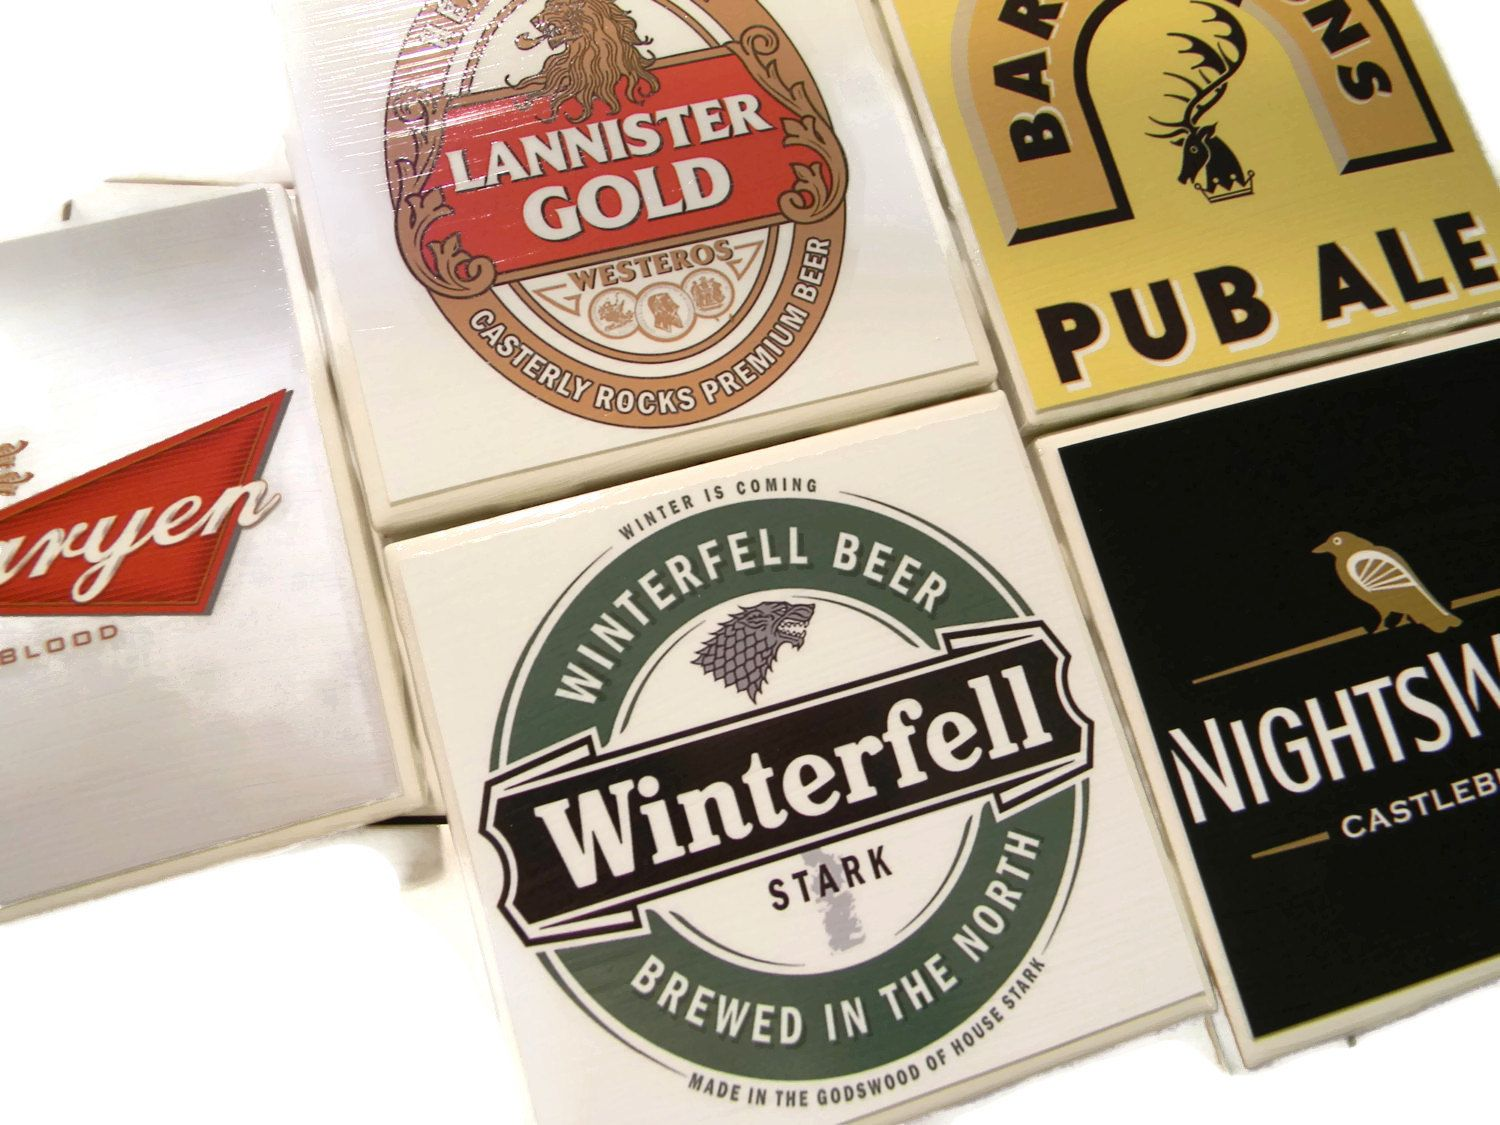 game of thrones beer coasters winterfell game of thrones beer coasters winterfell targaryen lannister baratheon and nightswatch variety pack targaryen